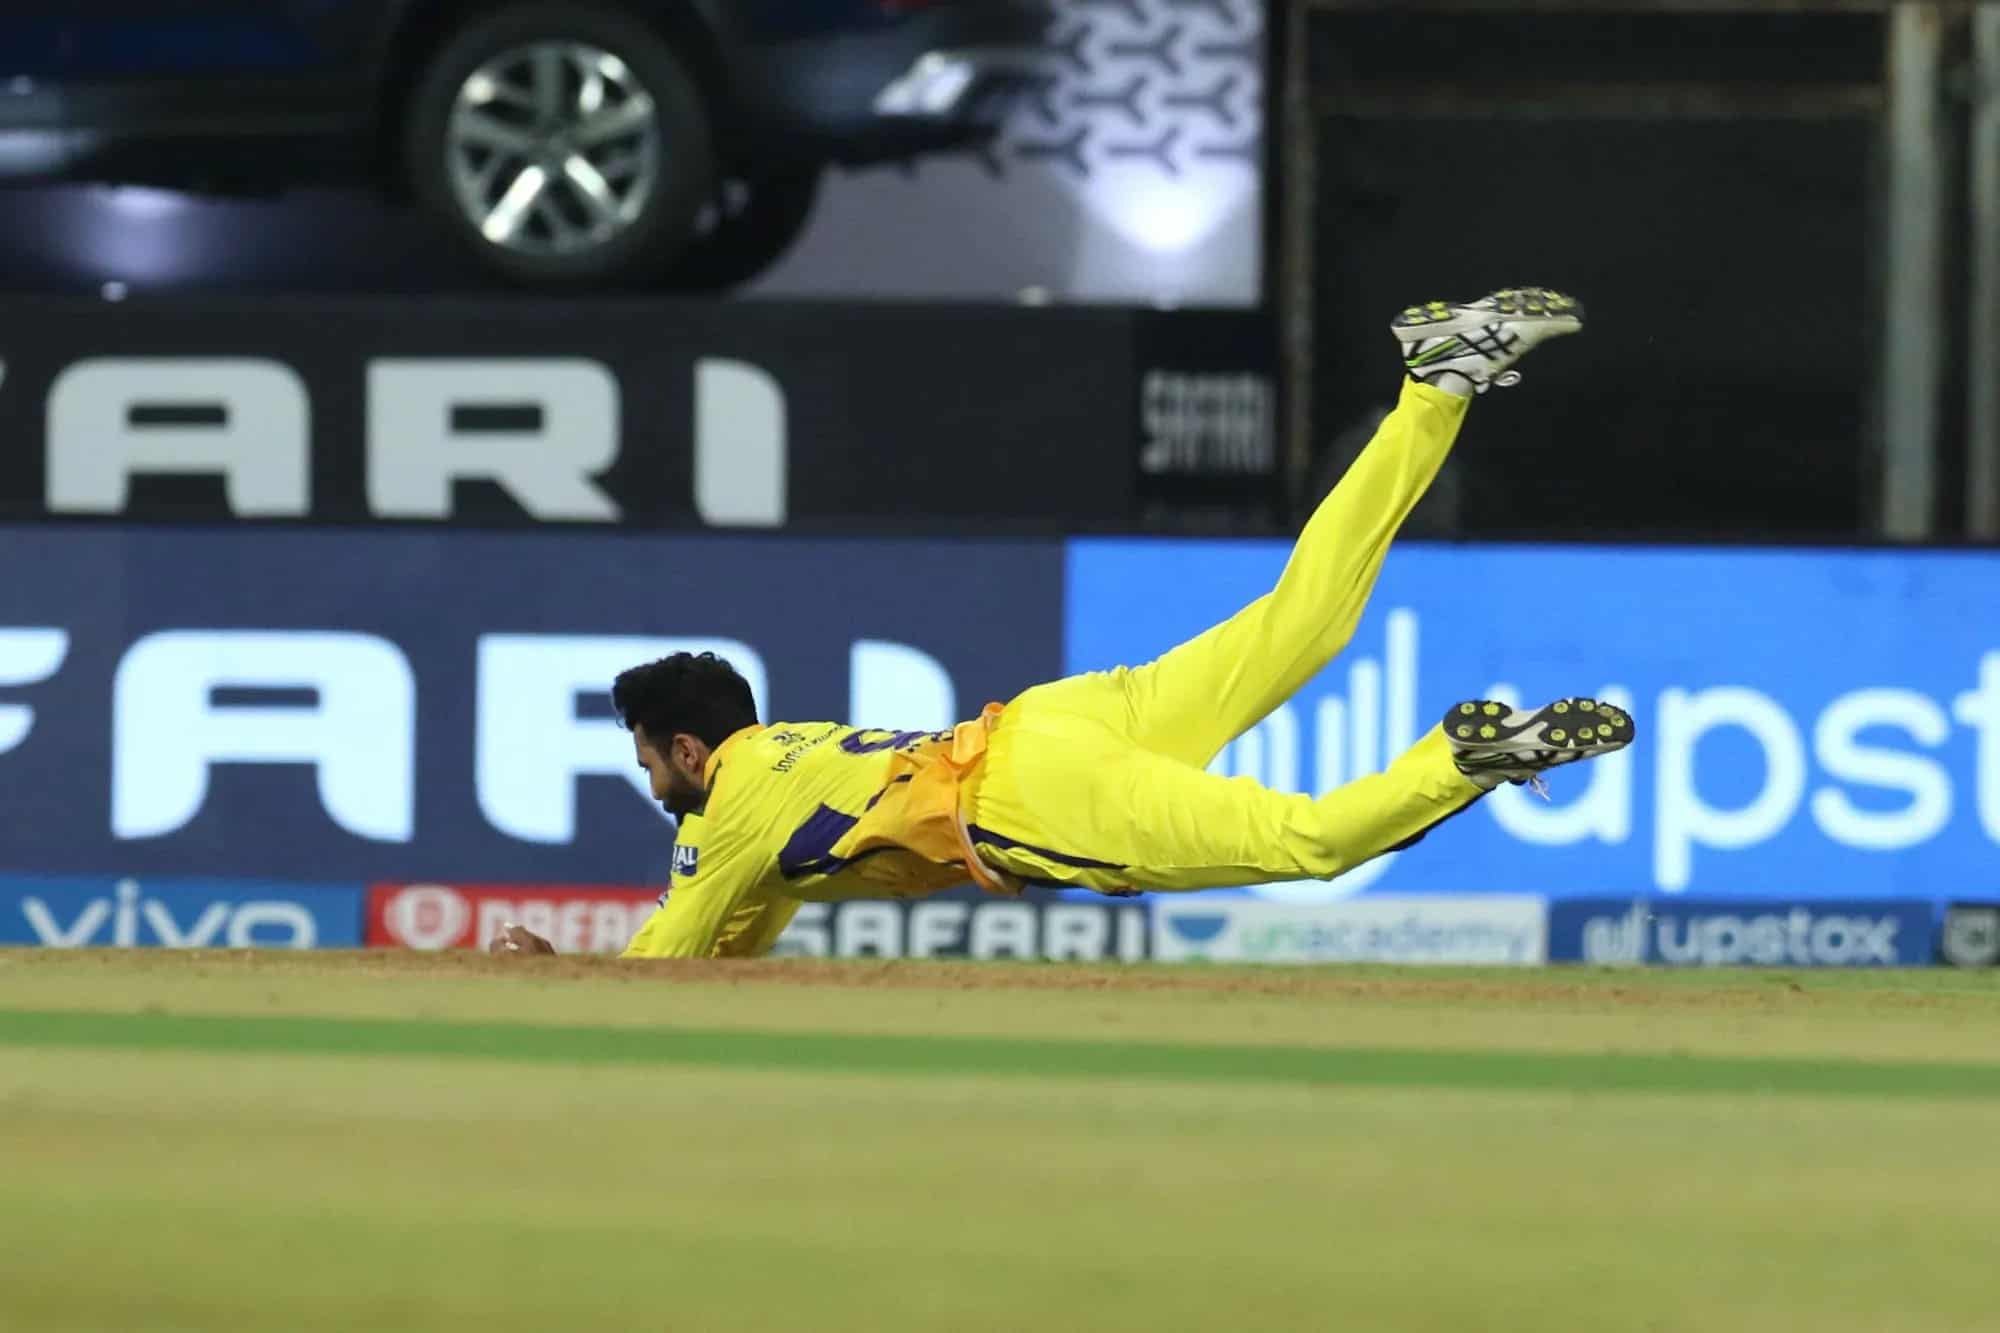 PBKS vs CSK: Ravindra Jadeja Affected Most Run Outs in IPL History